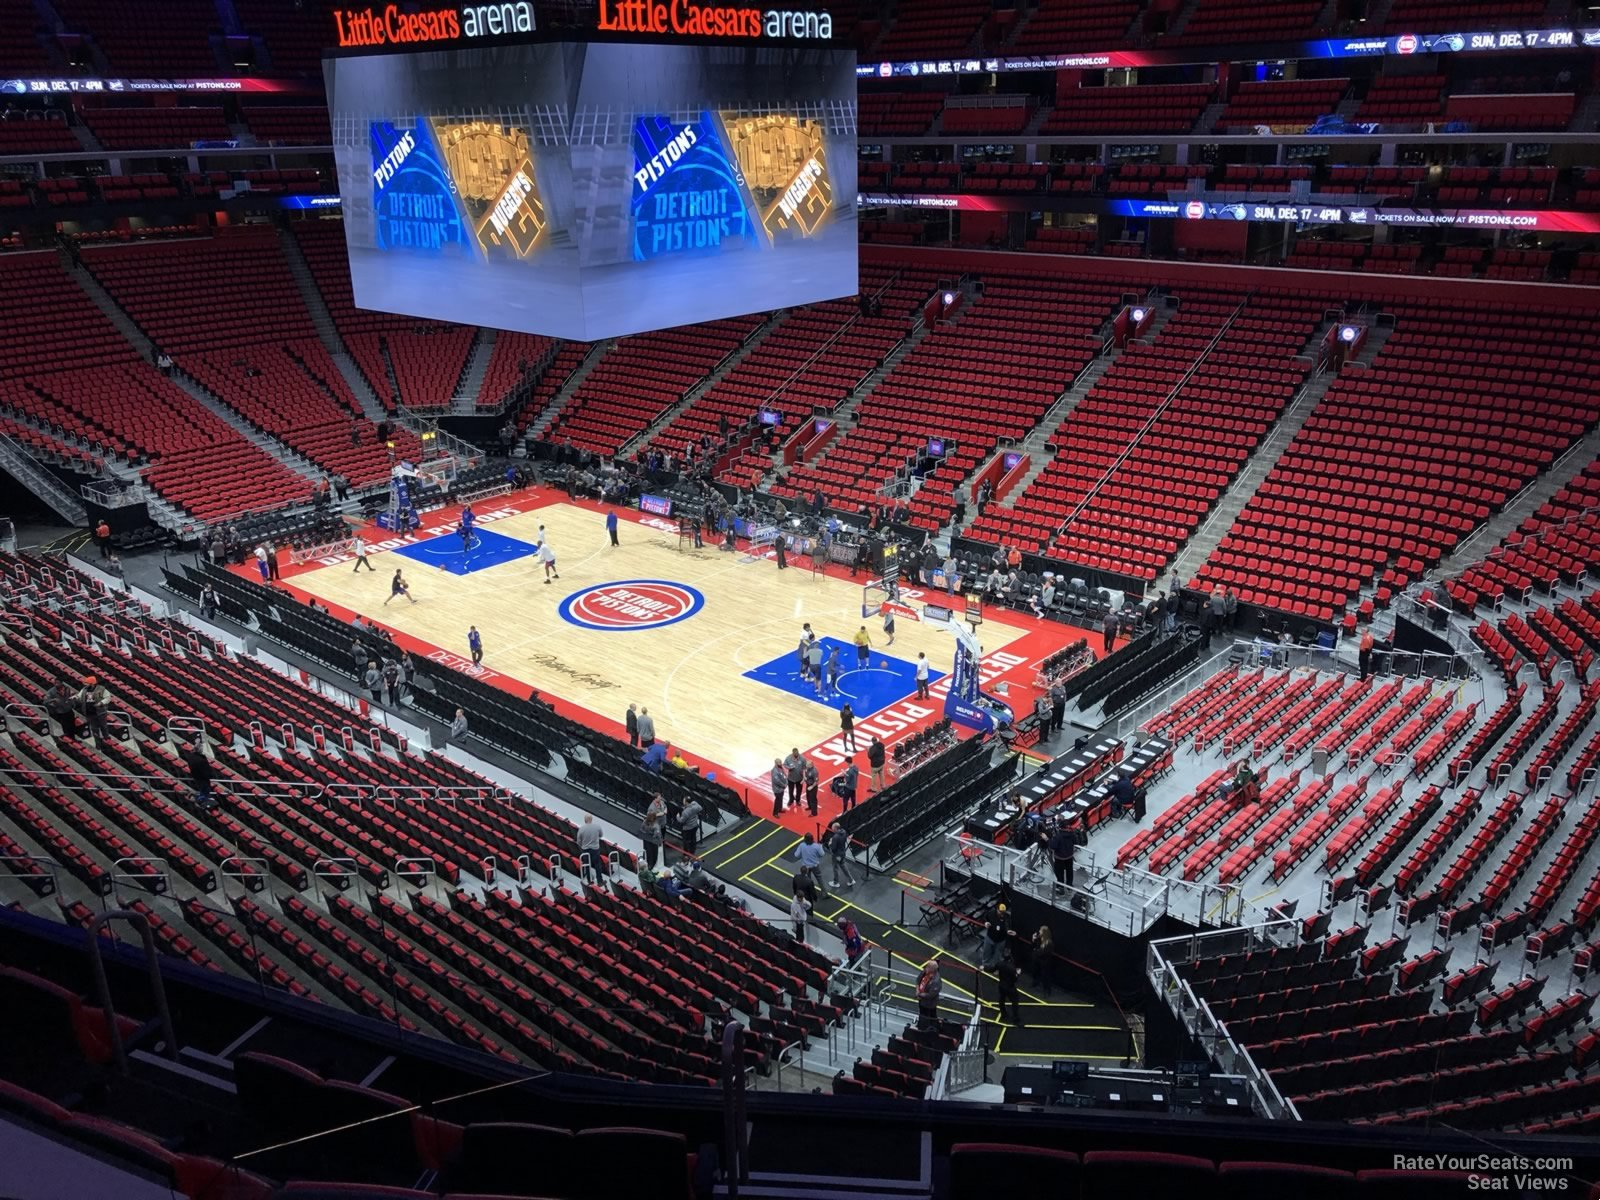 Detroit Pistons Seat View for Little Caesars Arena Mezzanine 6, Row 2